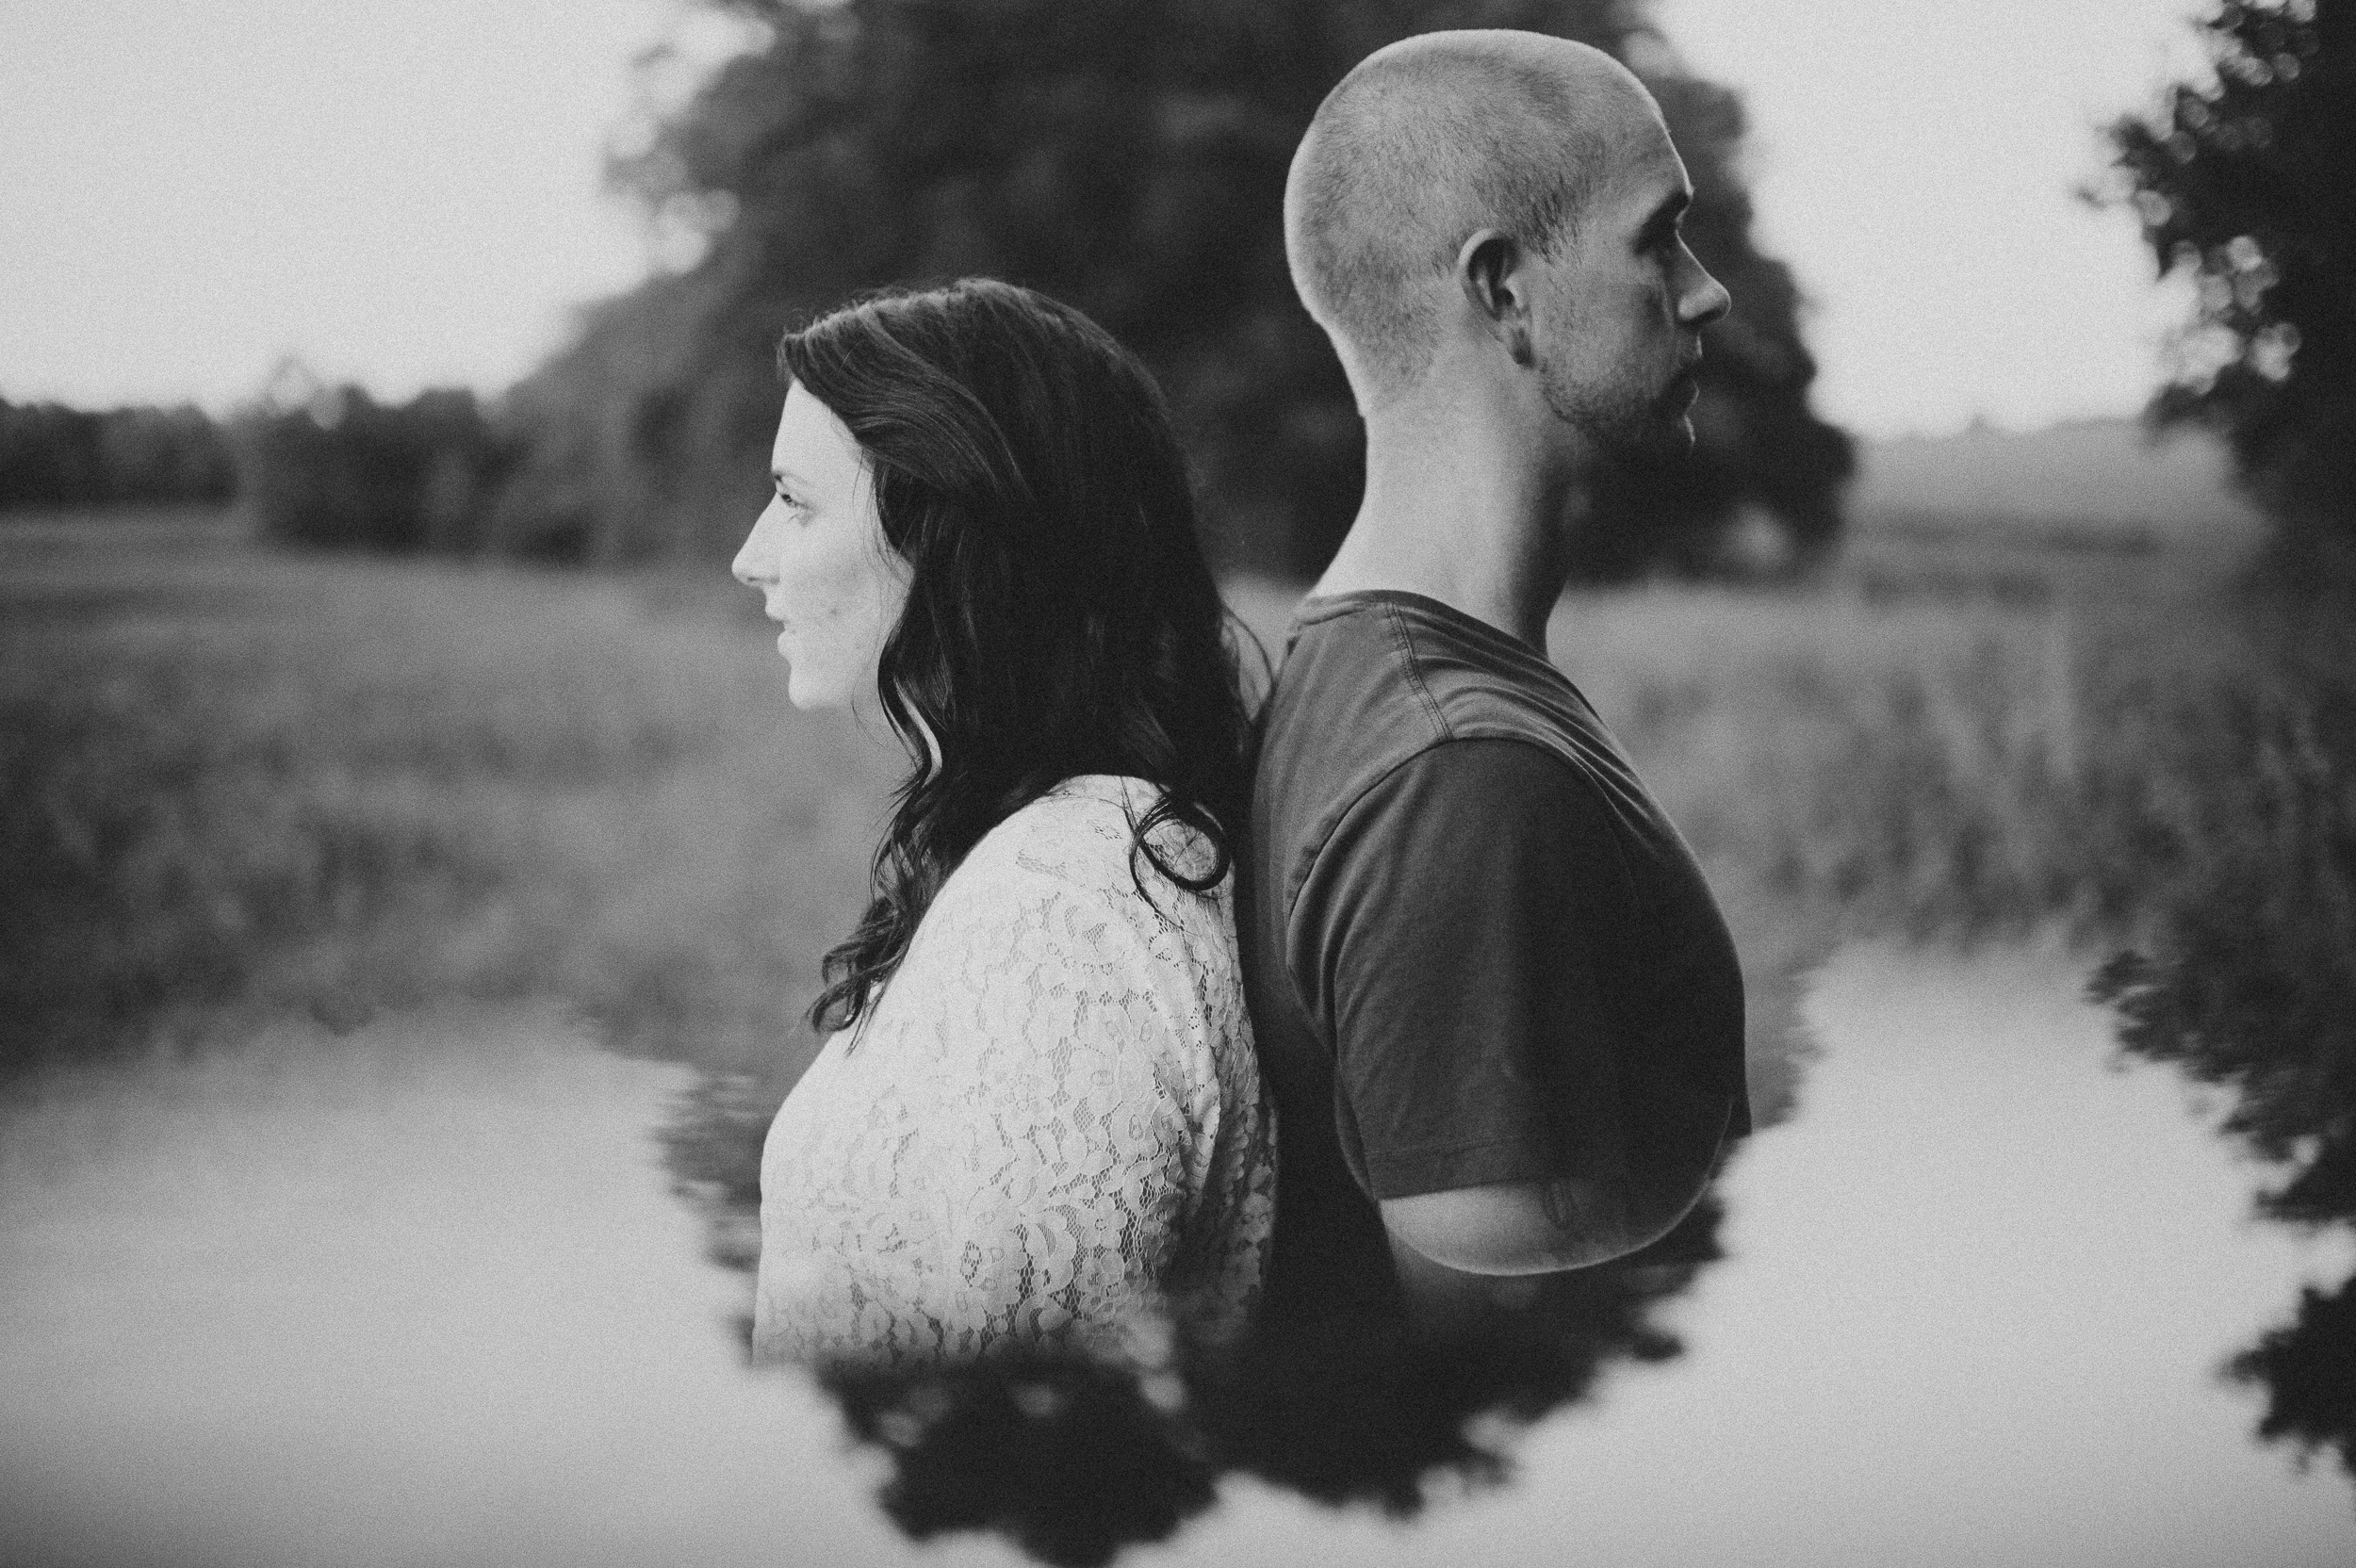 pat-robinson-photography-pa-engagement-session-19.jpg